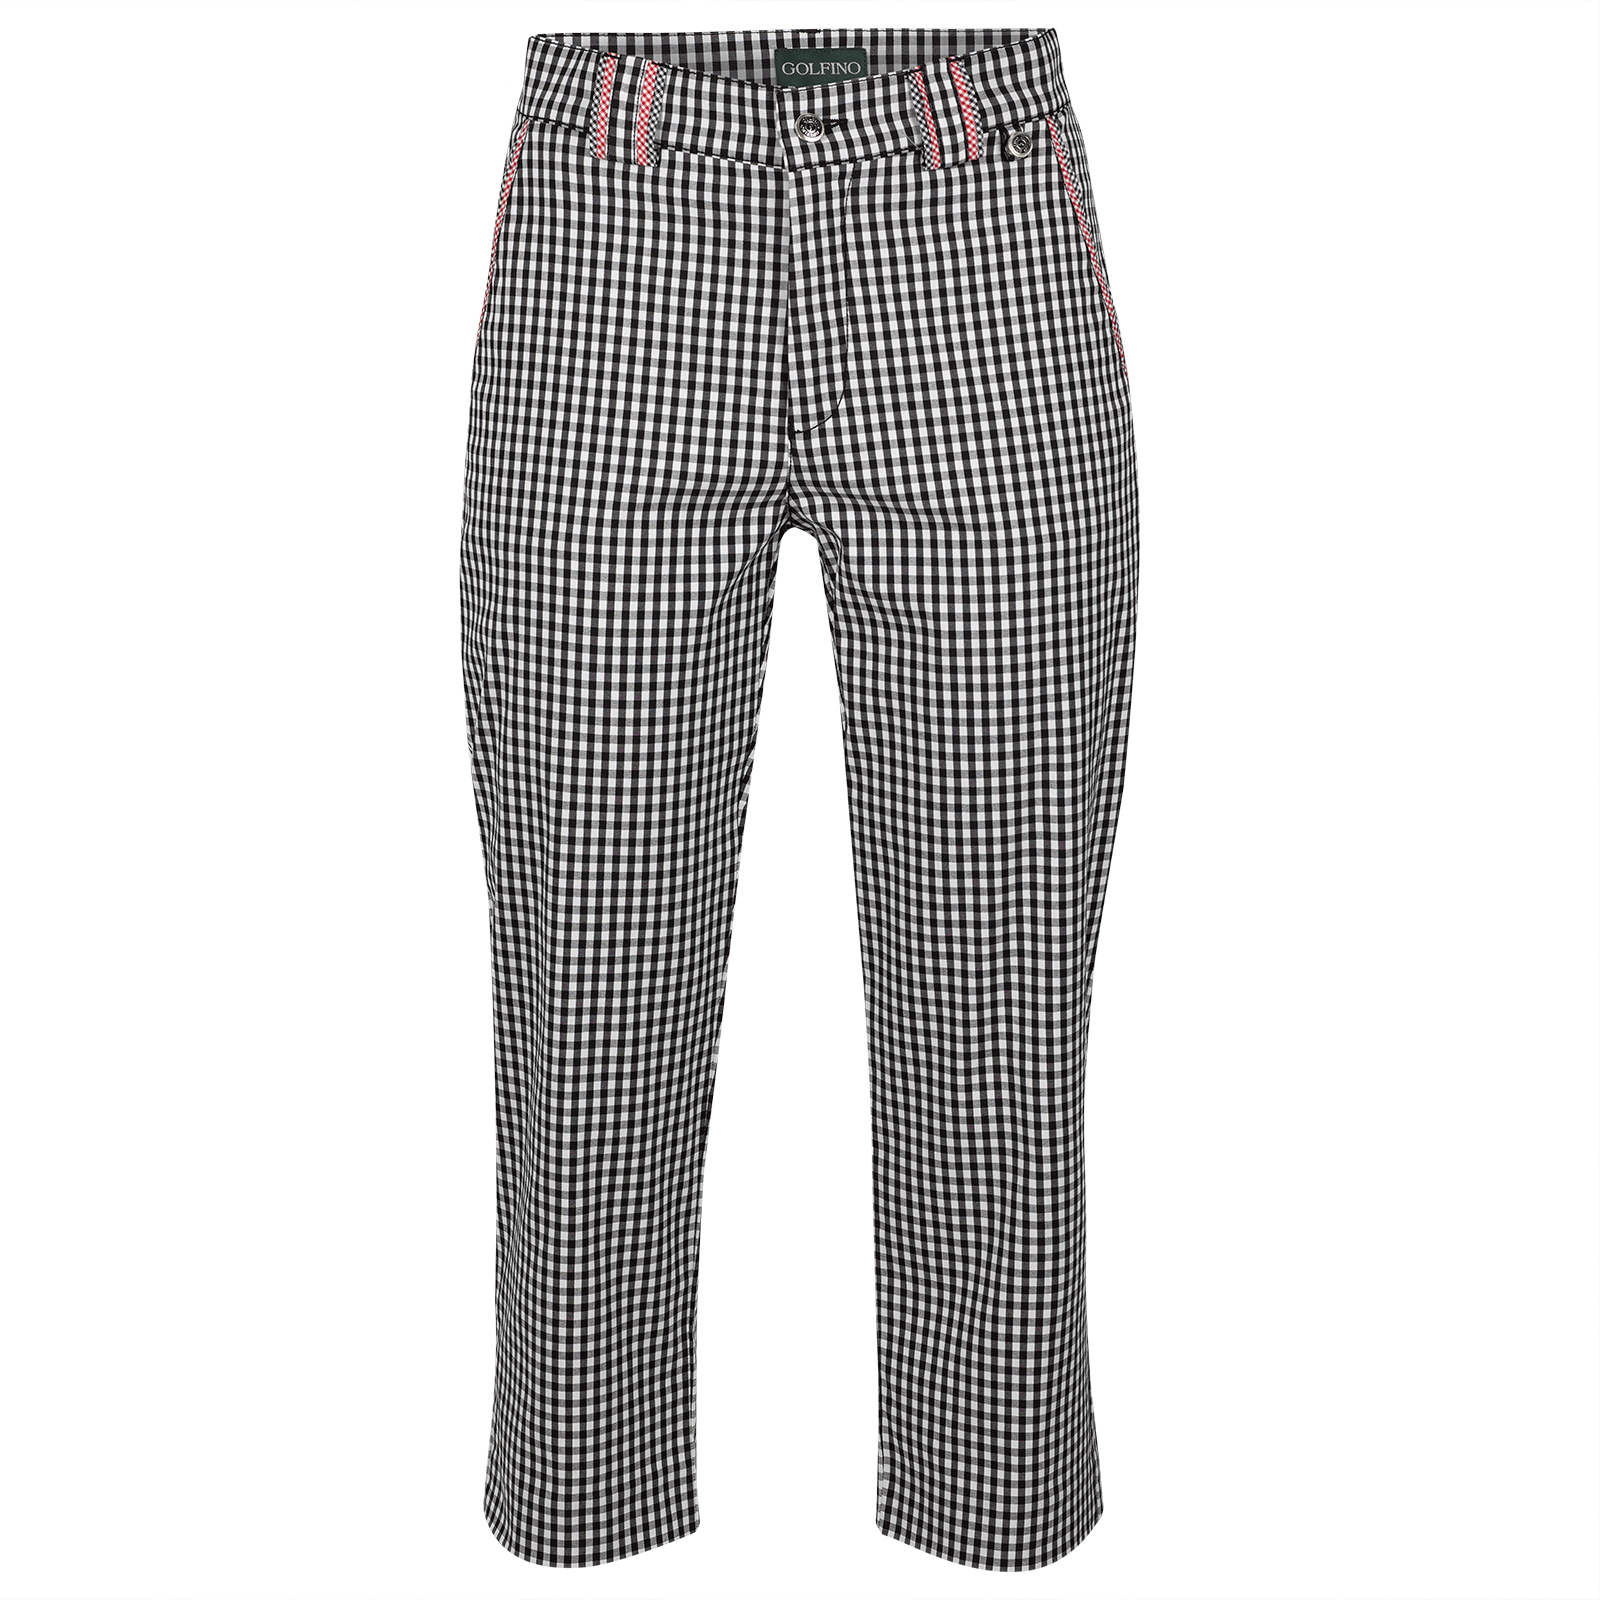 Ladies' Golf Capri with fashionable Vichy pattern and stretch function